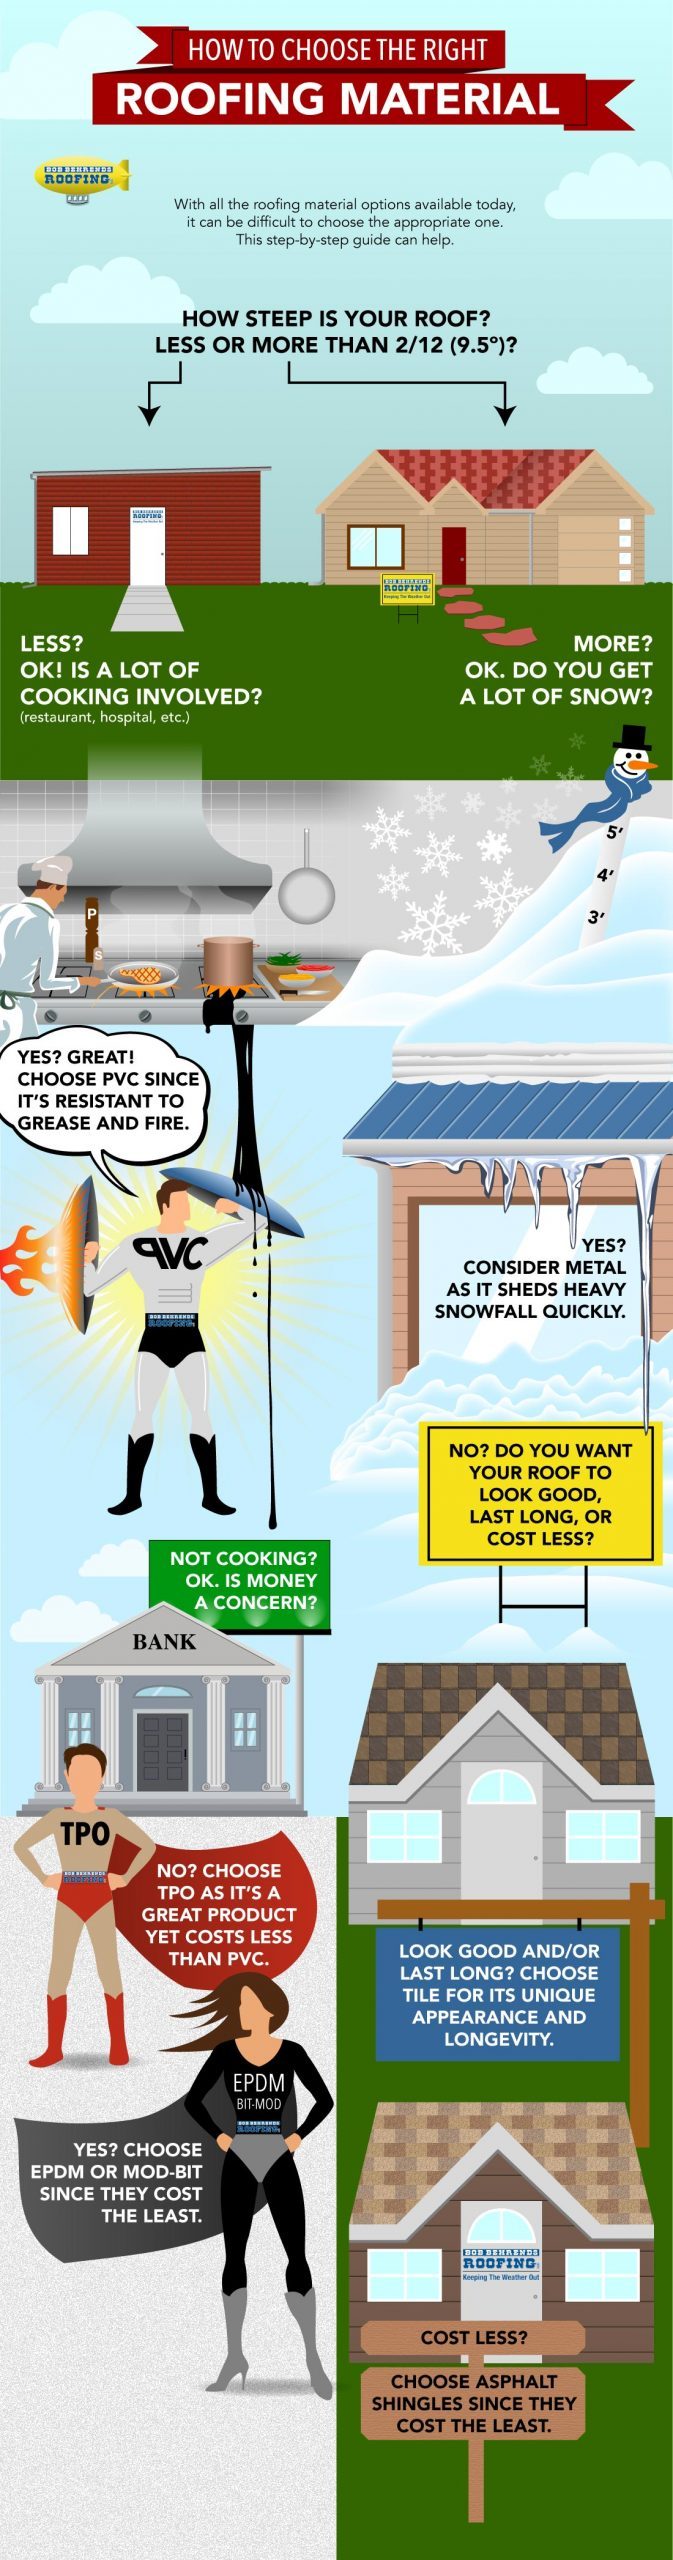 An info-graphic showing how to choose the right roofing material for your roof depending up its pitch